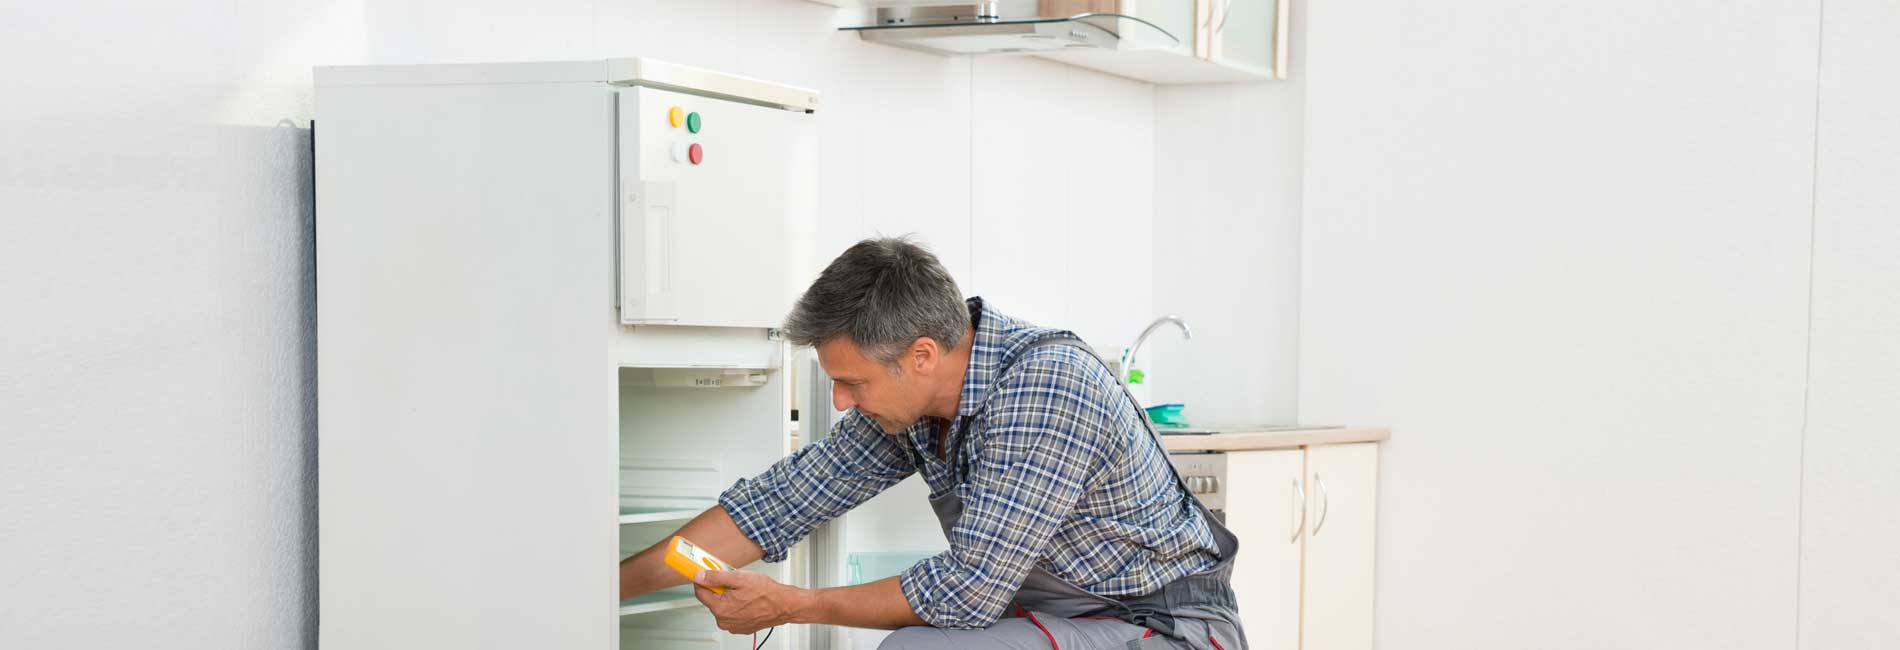 Whirlpool Fridge Repair in Chitlapakkam